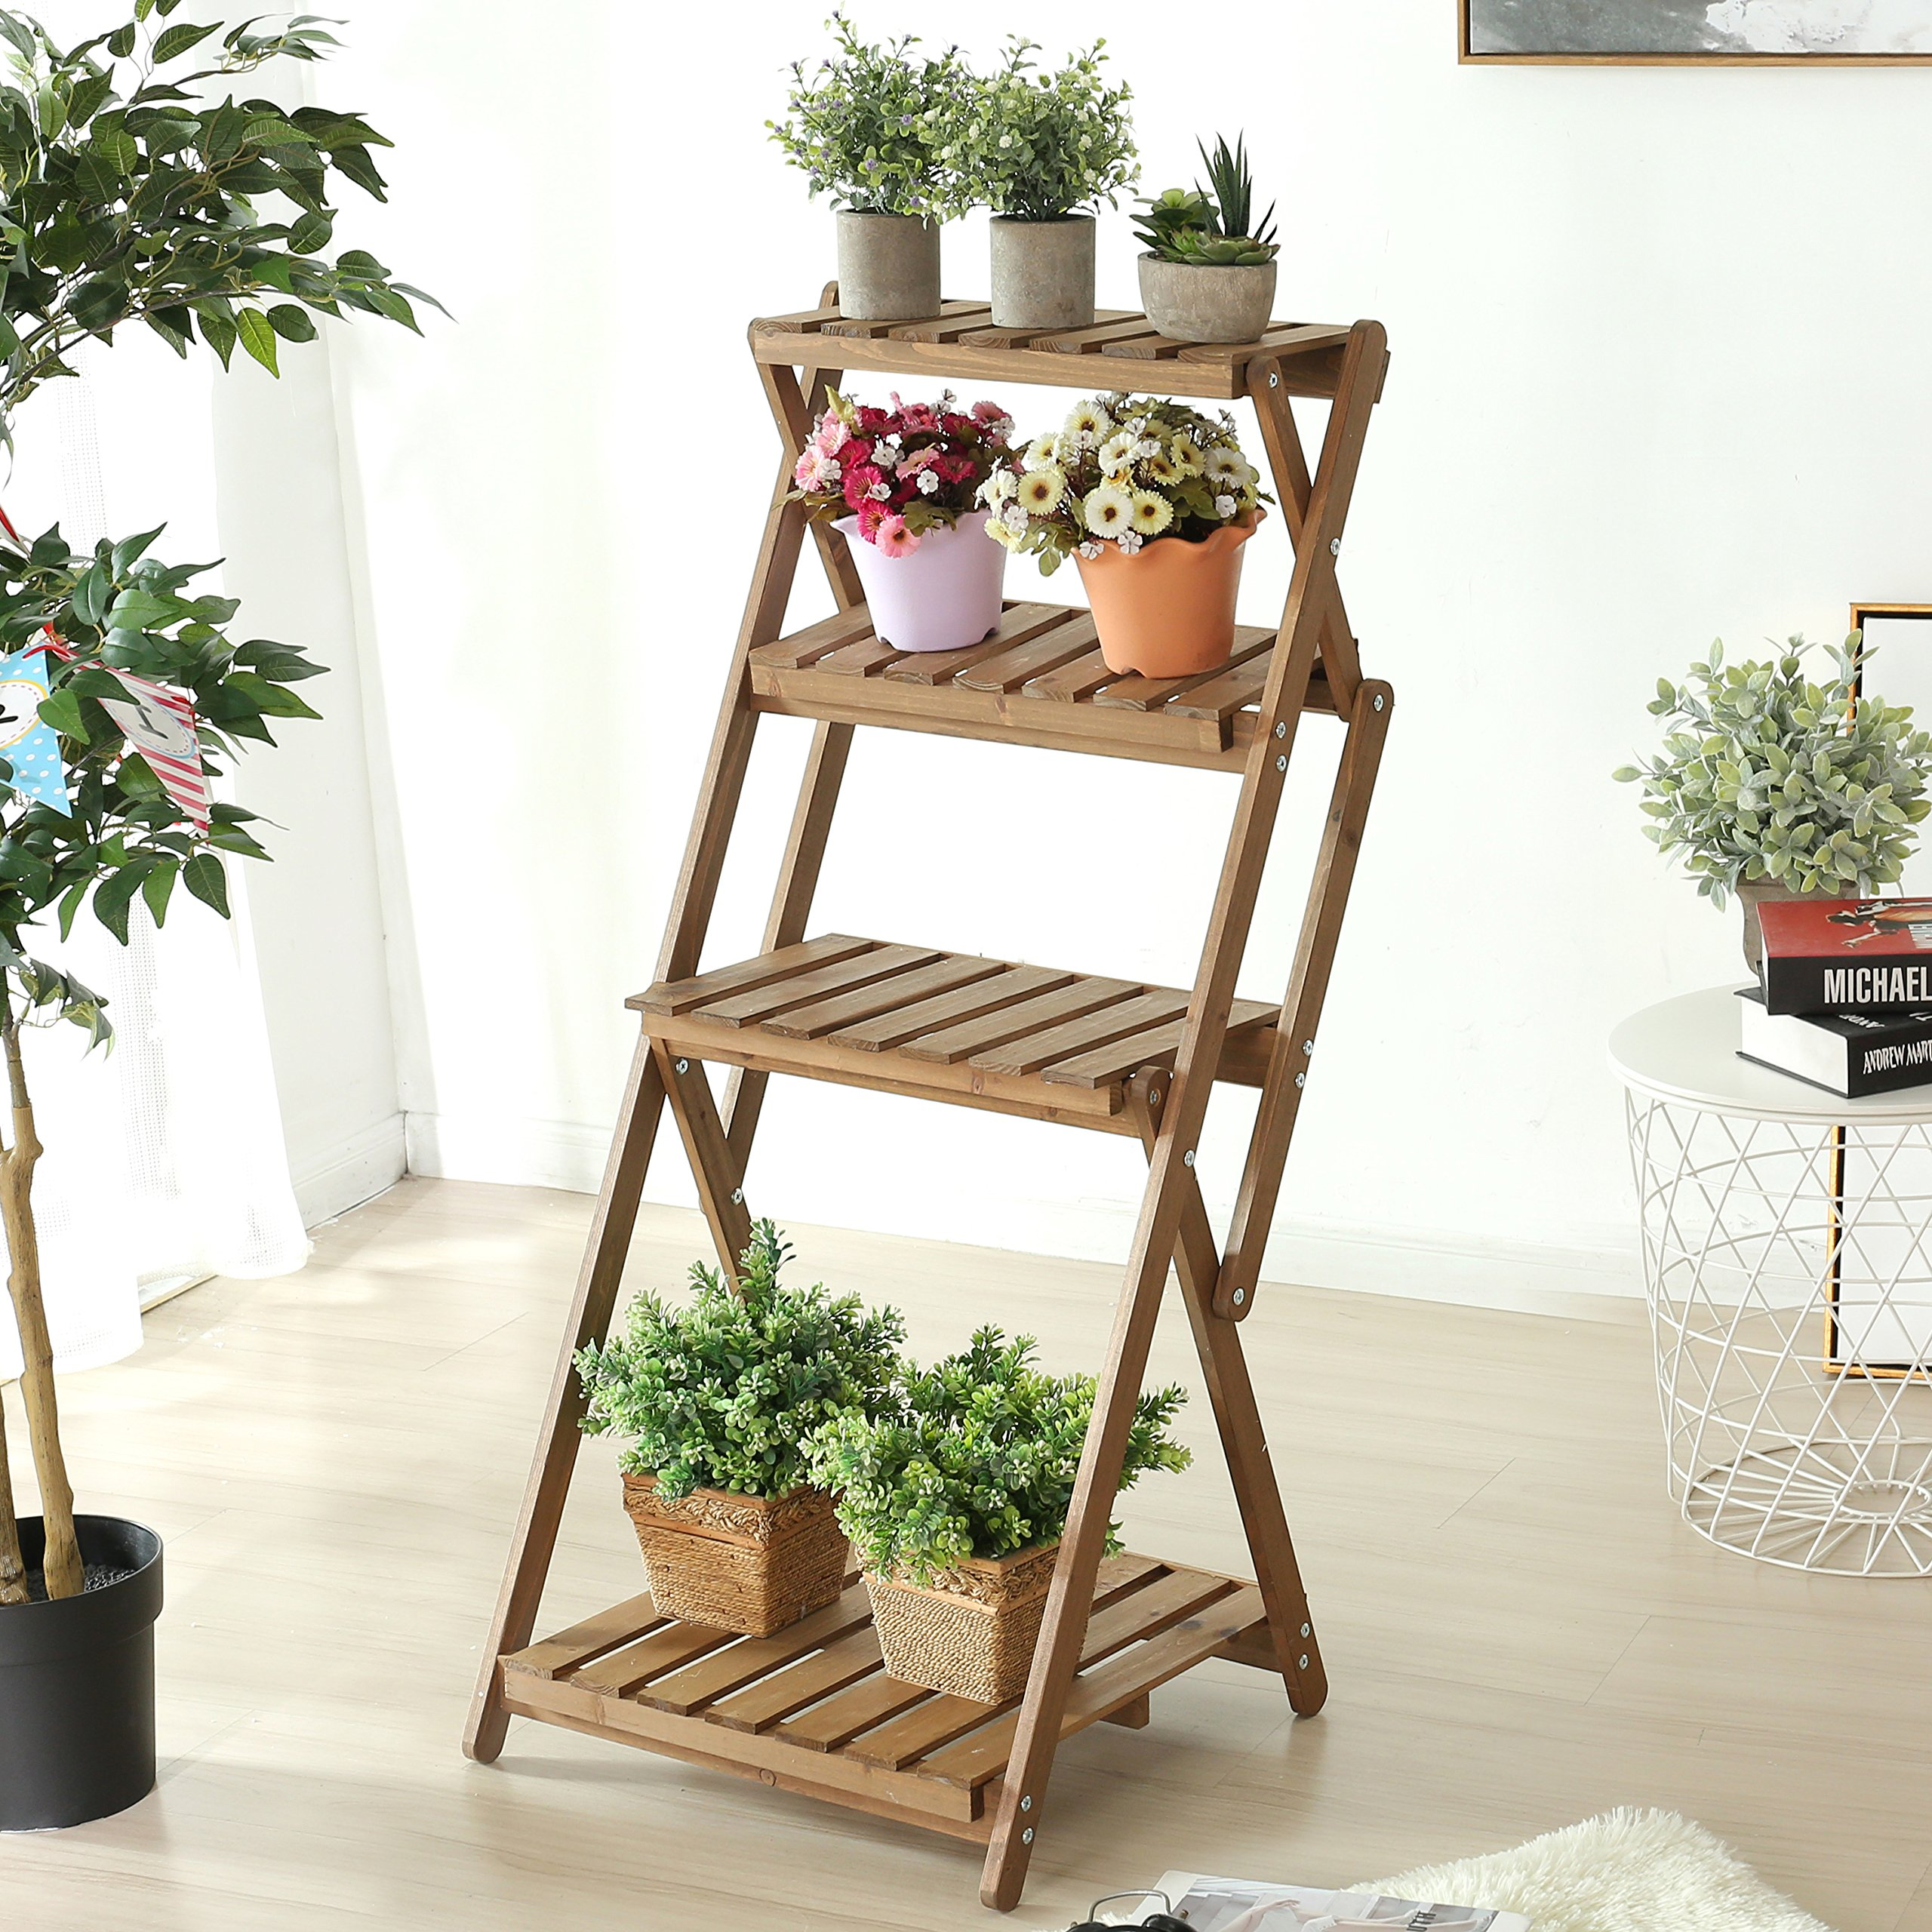 4 Tier Foldable Wood Slat Plant Rack, Decorative Indoor / Outdoor Display Shelf Stand, Brown by MyGift